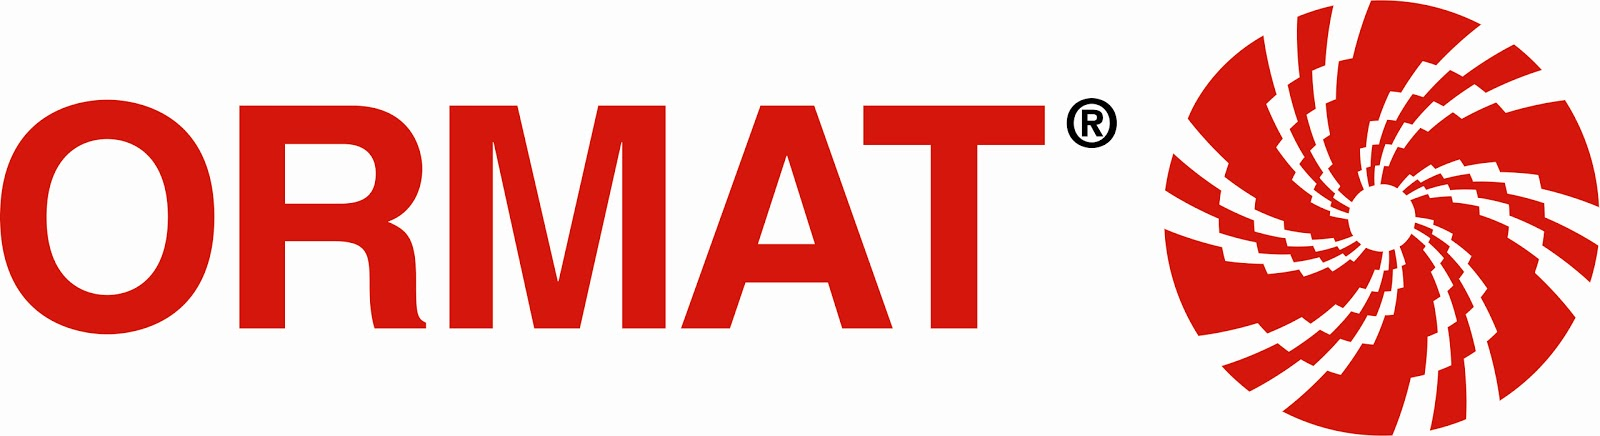 Ormat Technologies Inc. Concludes Auction to Price $204 Million Aggregate Principal Amount of Senior Unsecured Bonds in Proposed Regulation S Offering